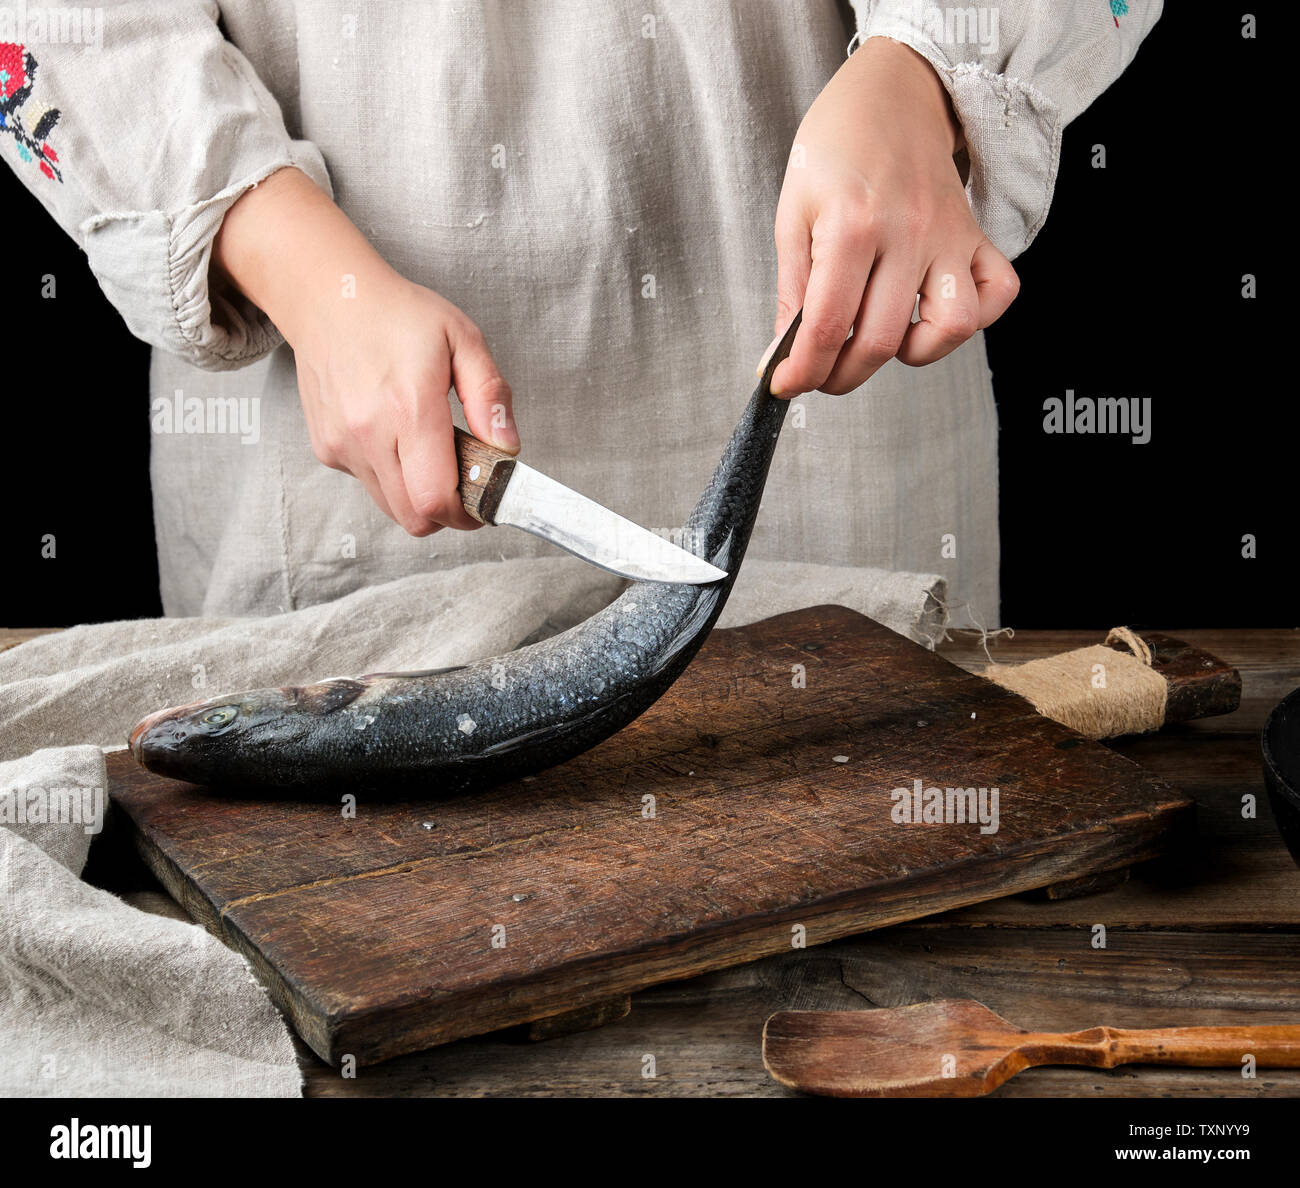 woman in gray linen clothes cleans the fish sea bass scales on a brown wooden board, black background - Stock Image